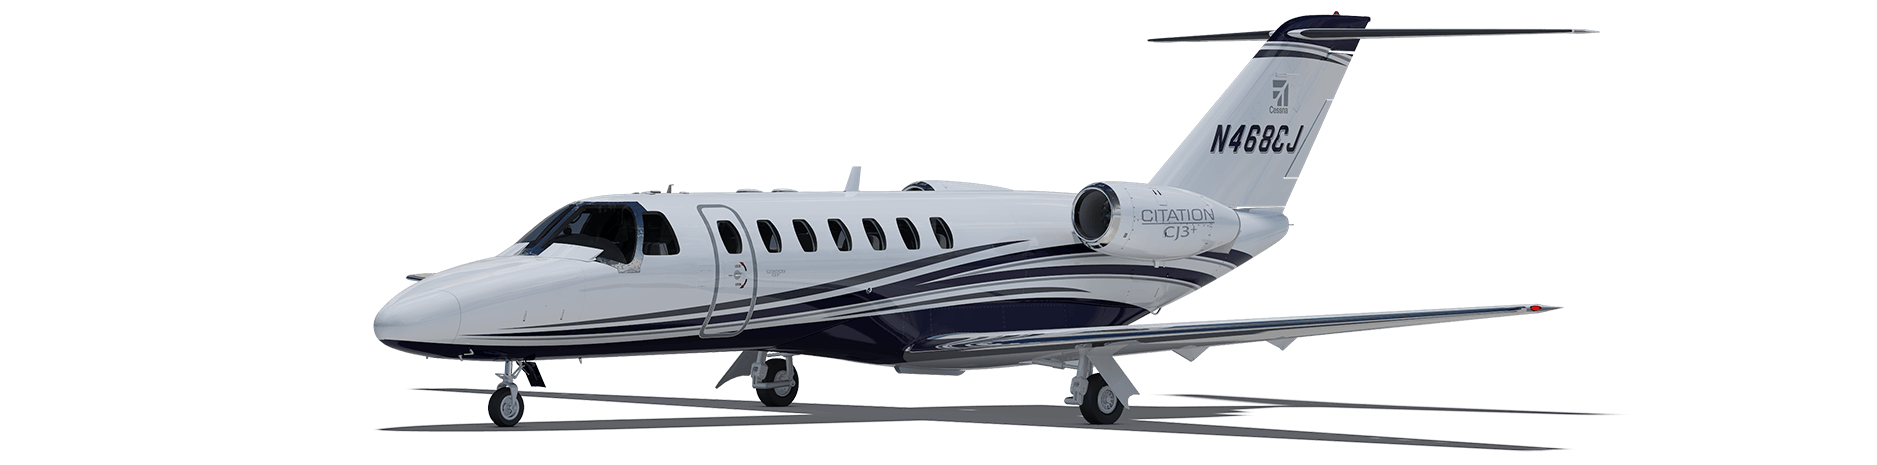 Citation cj3 move your mouse over the image to pause malvernweather Images